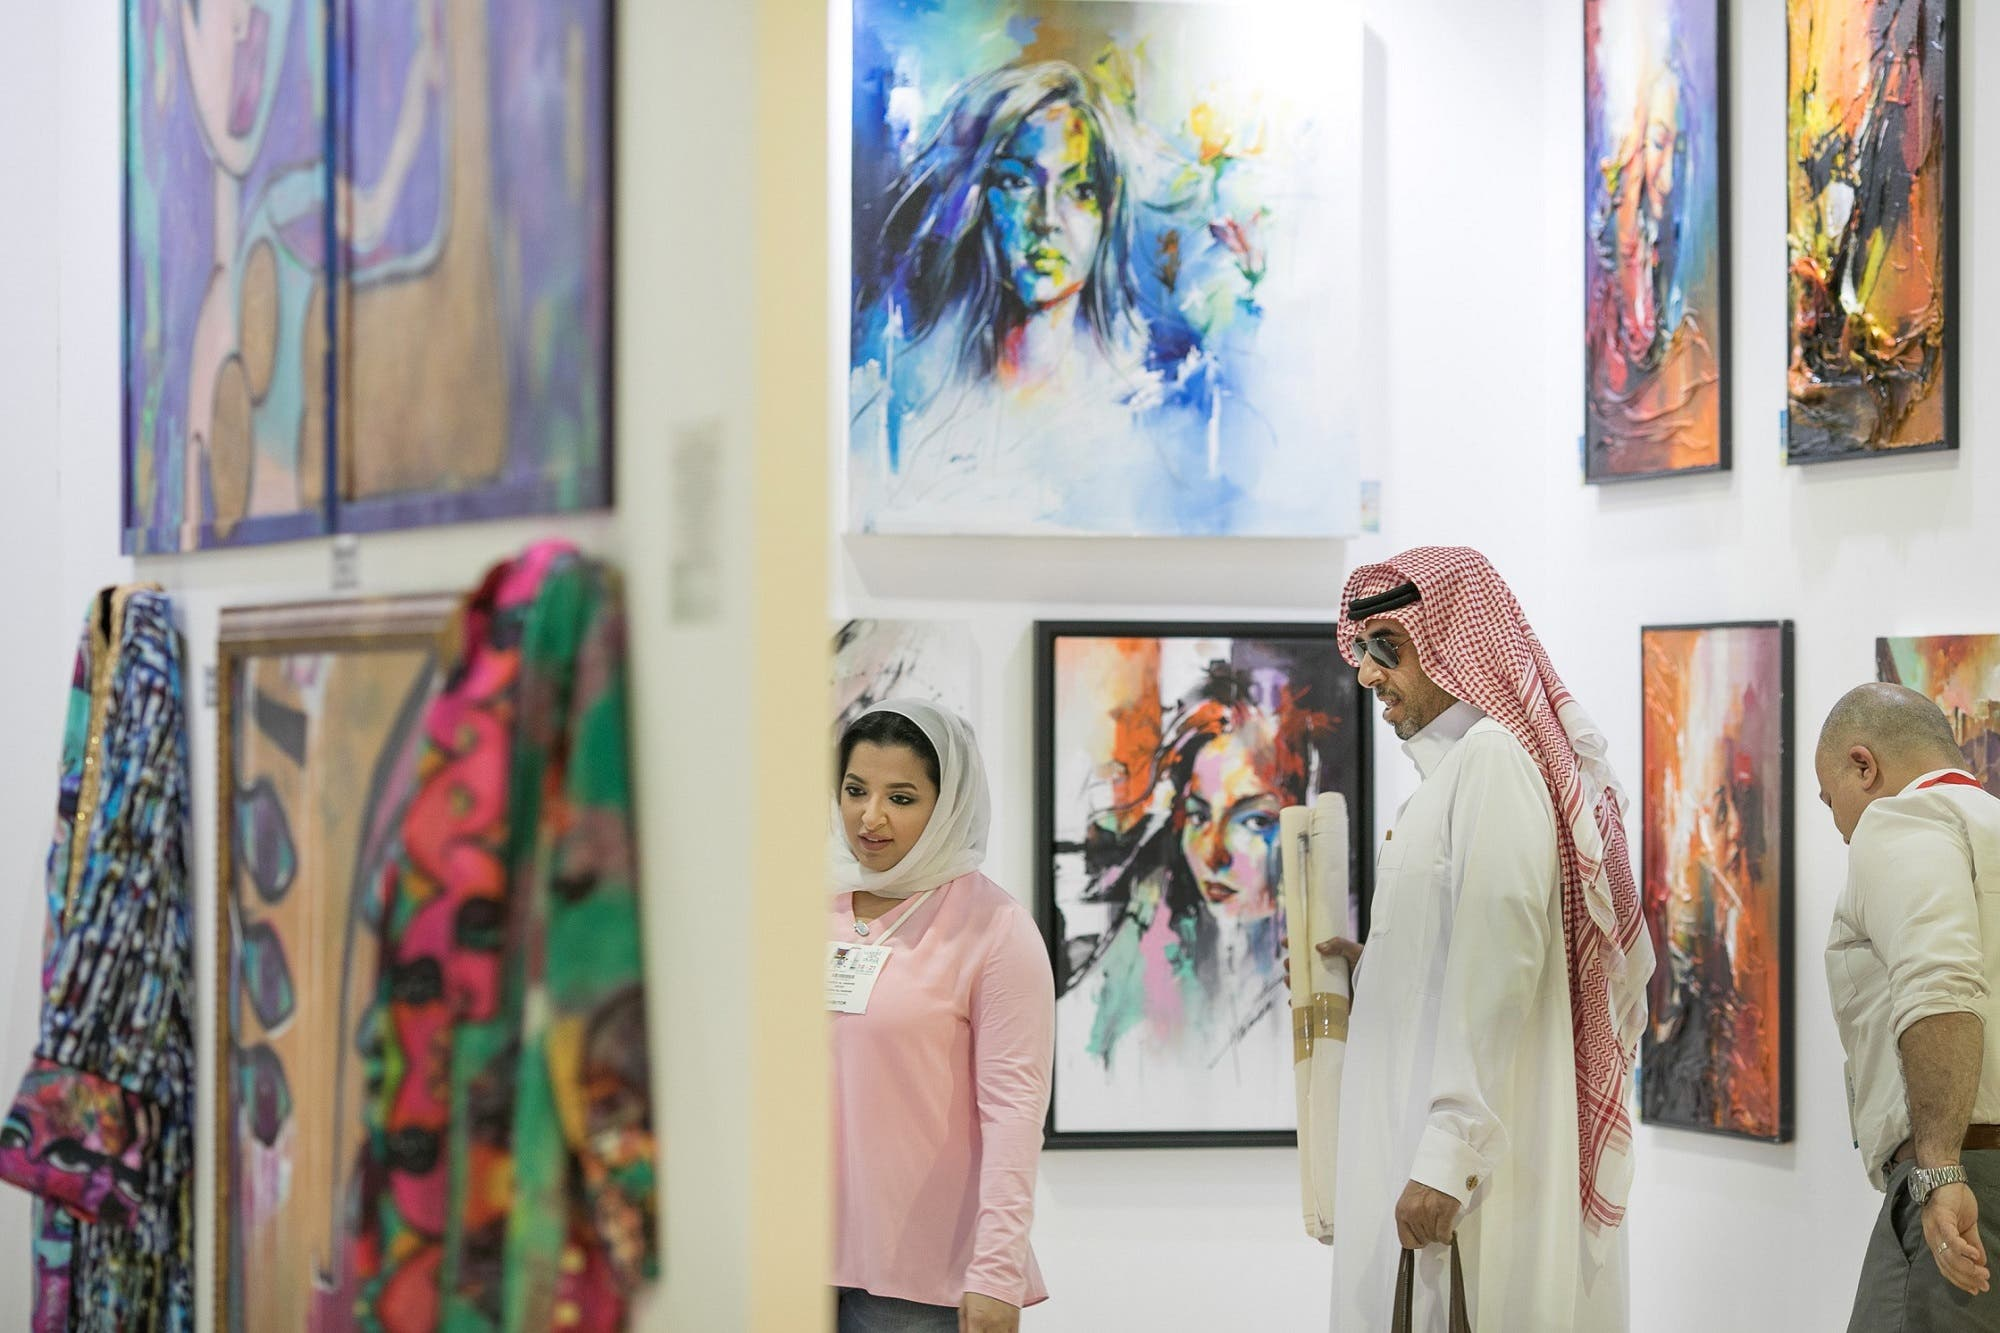 Over 4,000 artworks and prices for every budget were available at World Art Dubai this year. (Supplied)